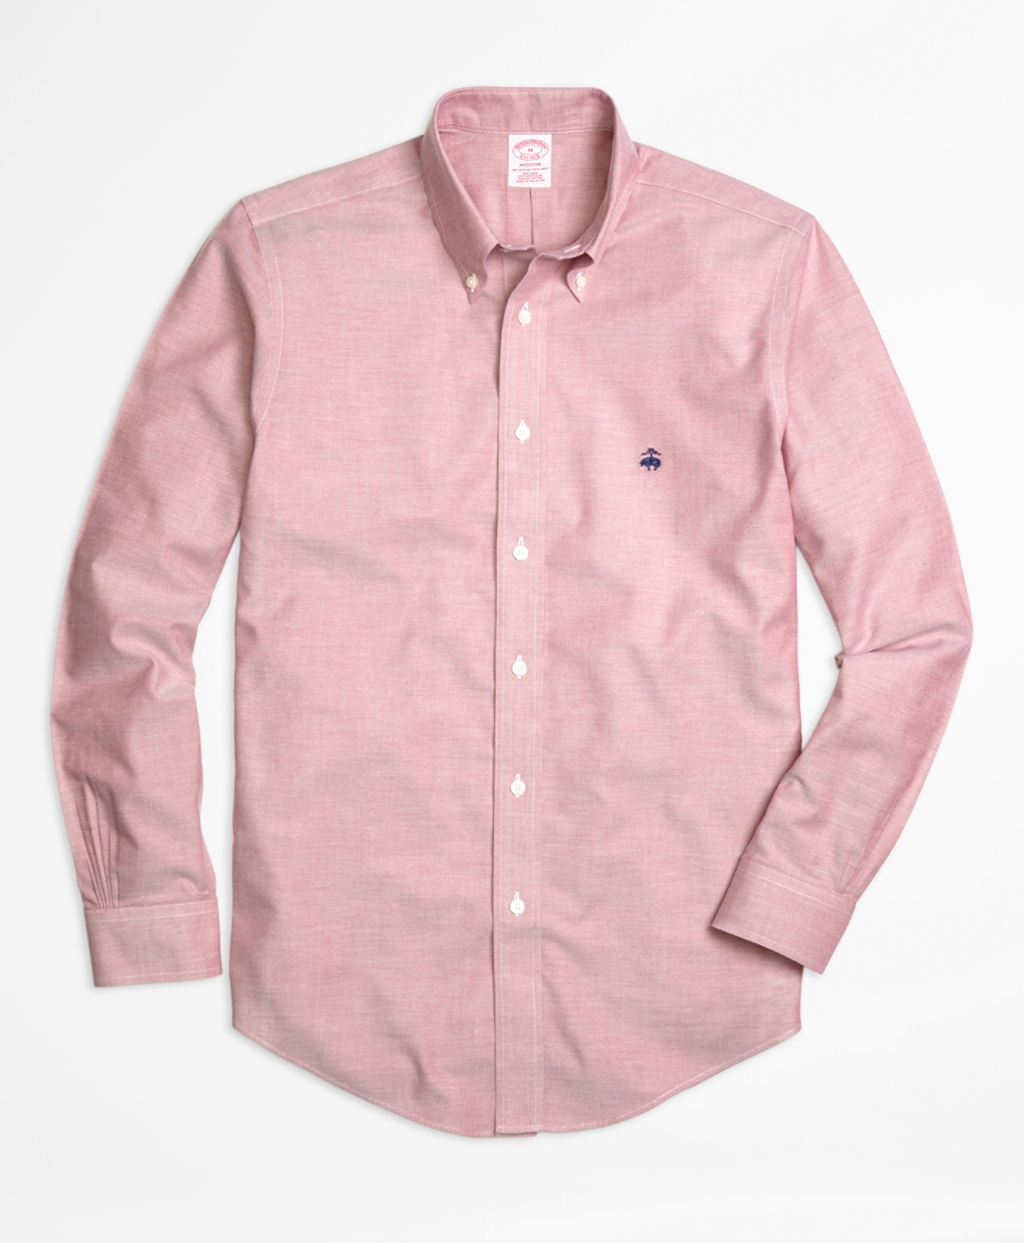 Brooks brothers non iron madison fit oxford sport shirt in for Brooks brothers non iron shirts review